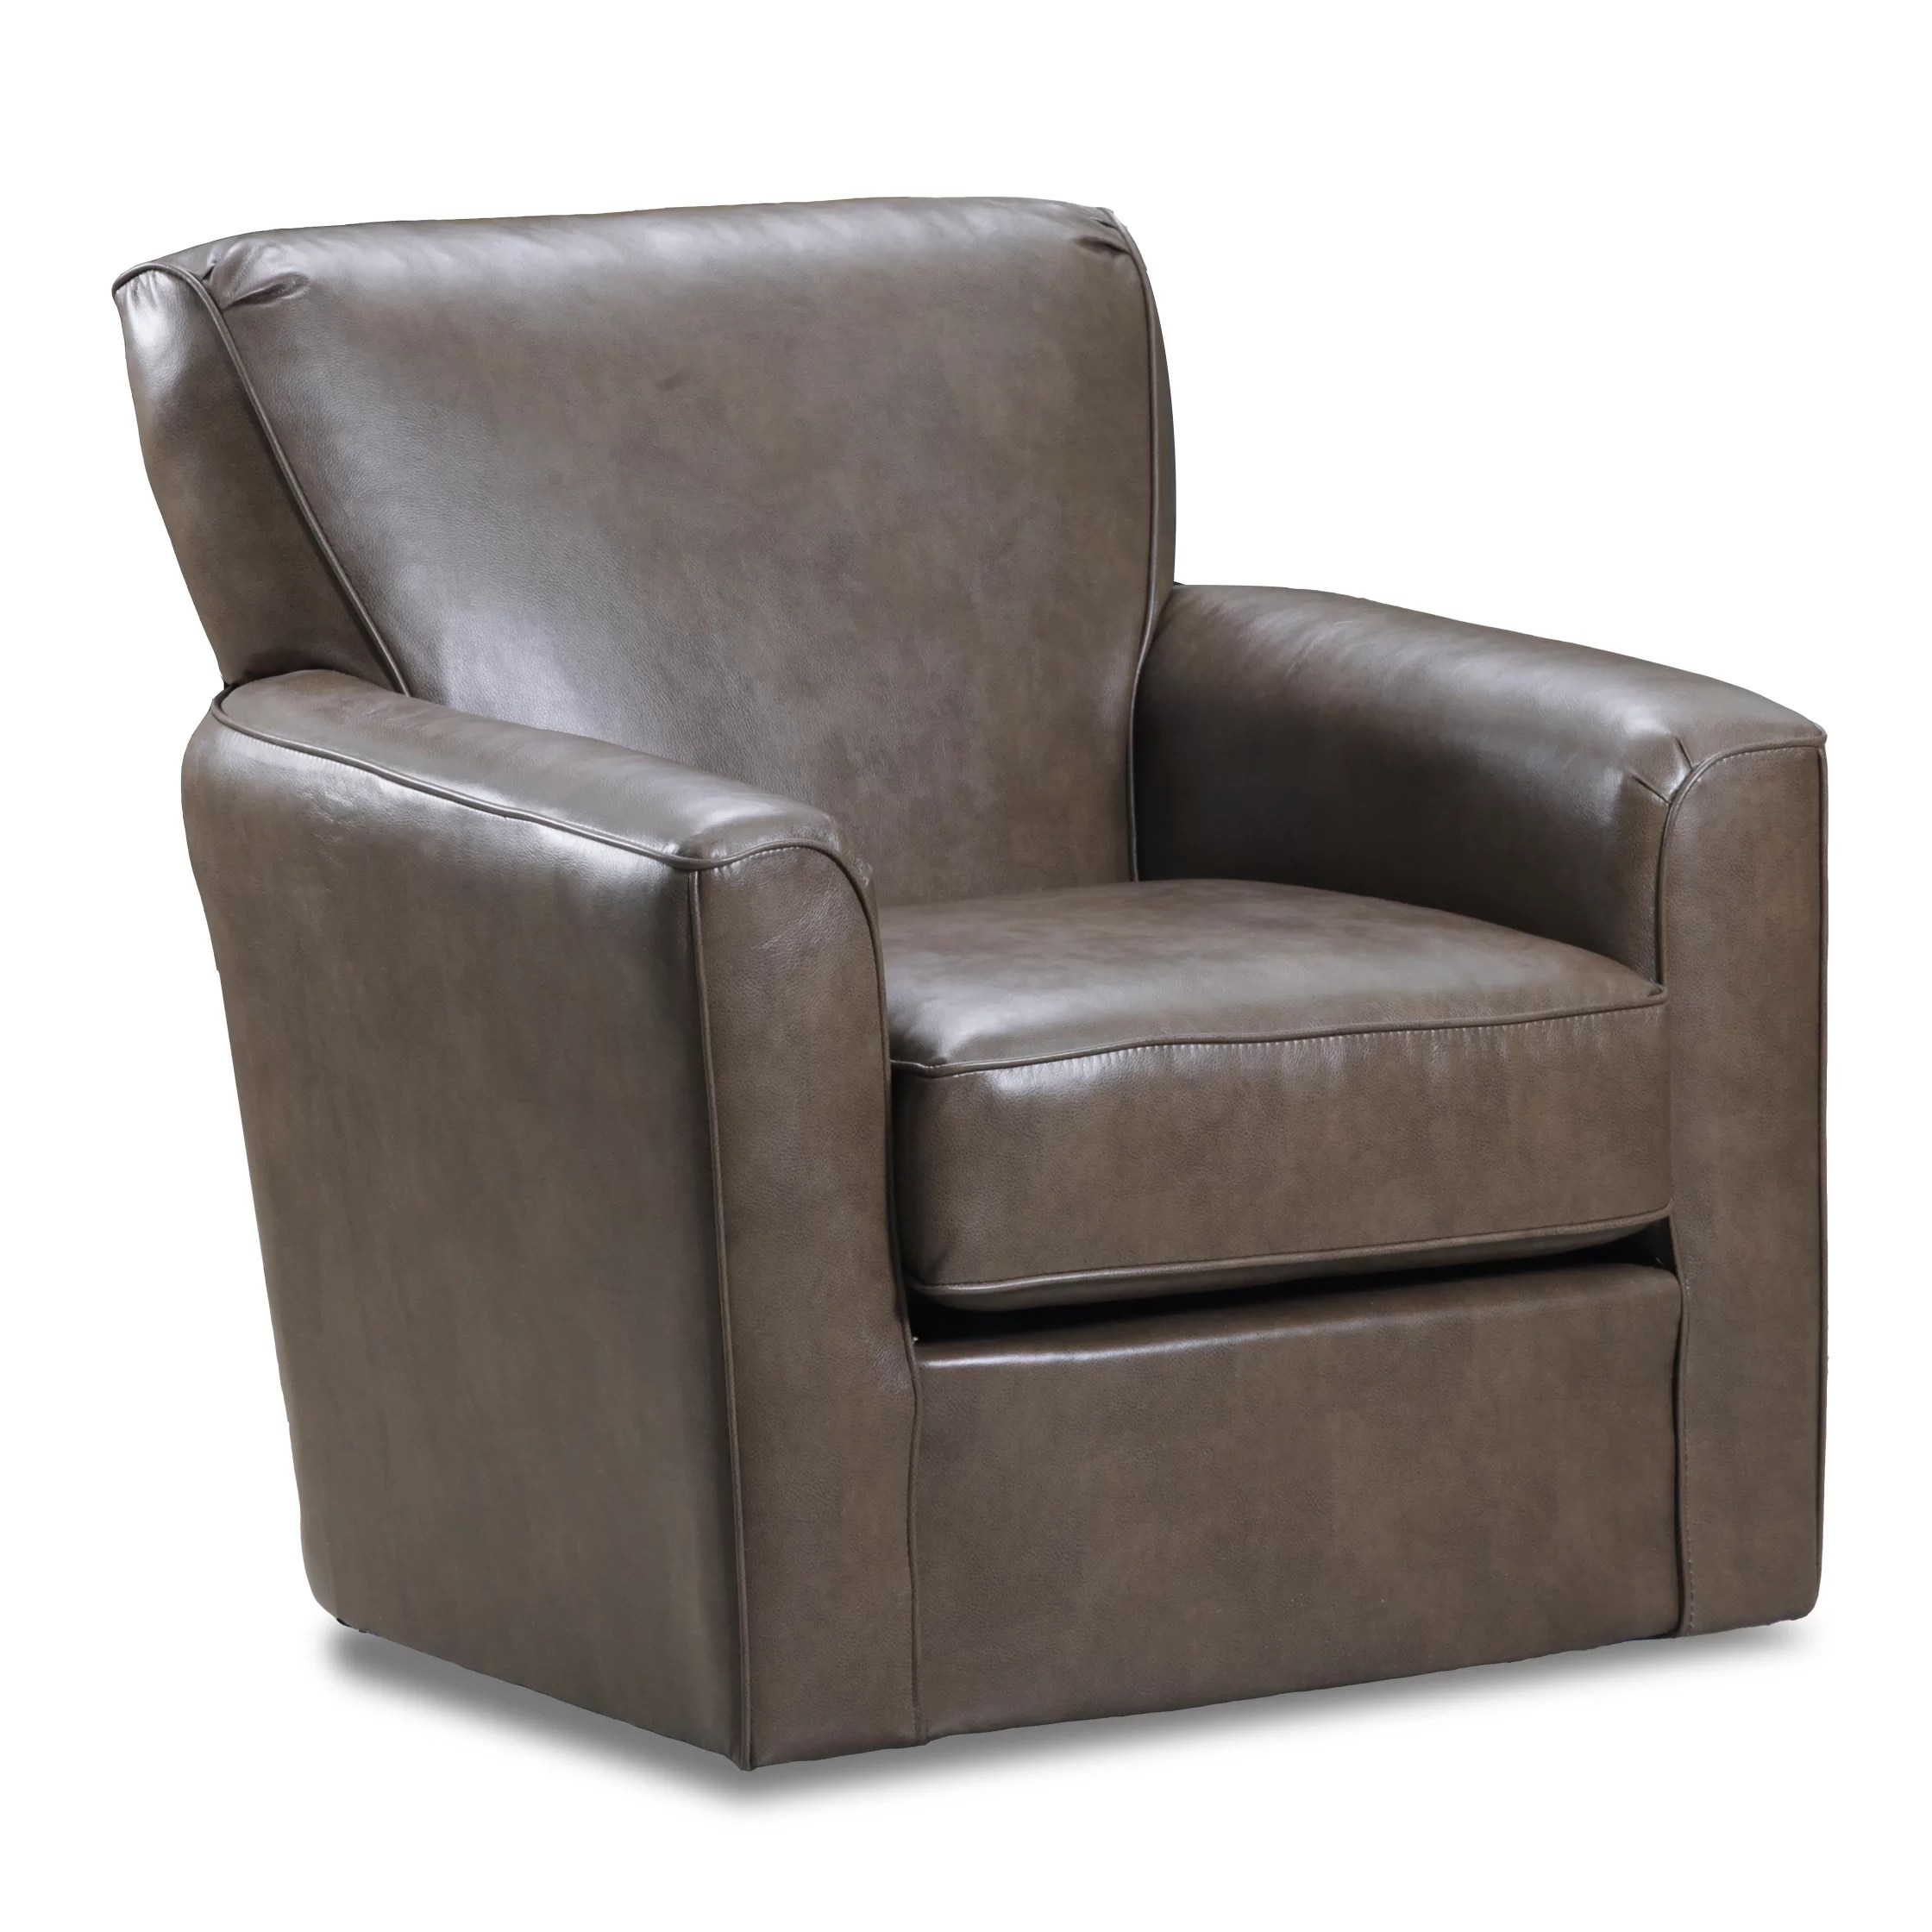 Barrel Chair Swivel Darby Home Co Simmons Upholstery Alice Swivel Barrel Chair